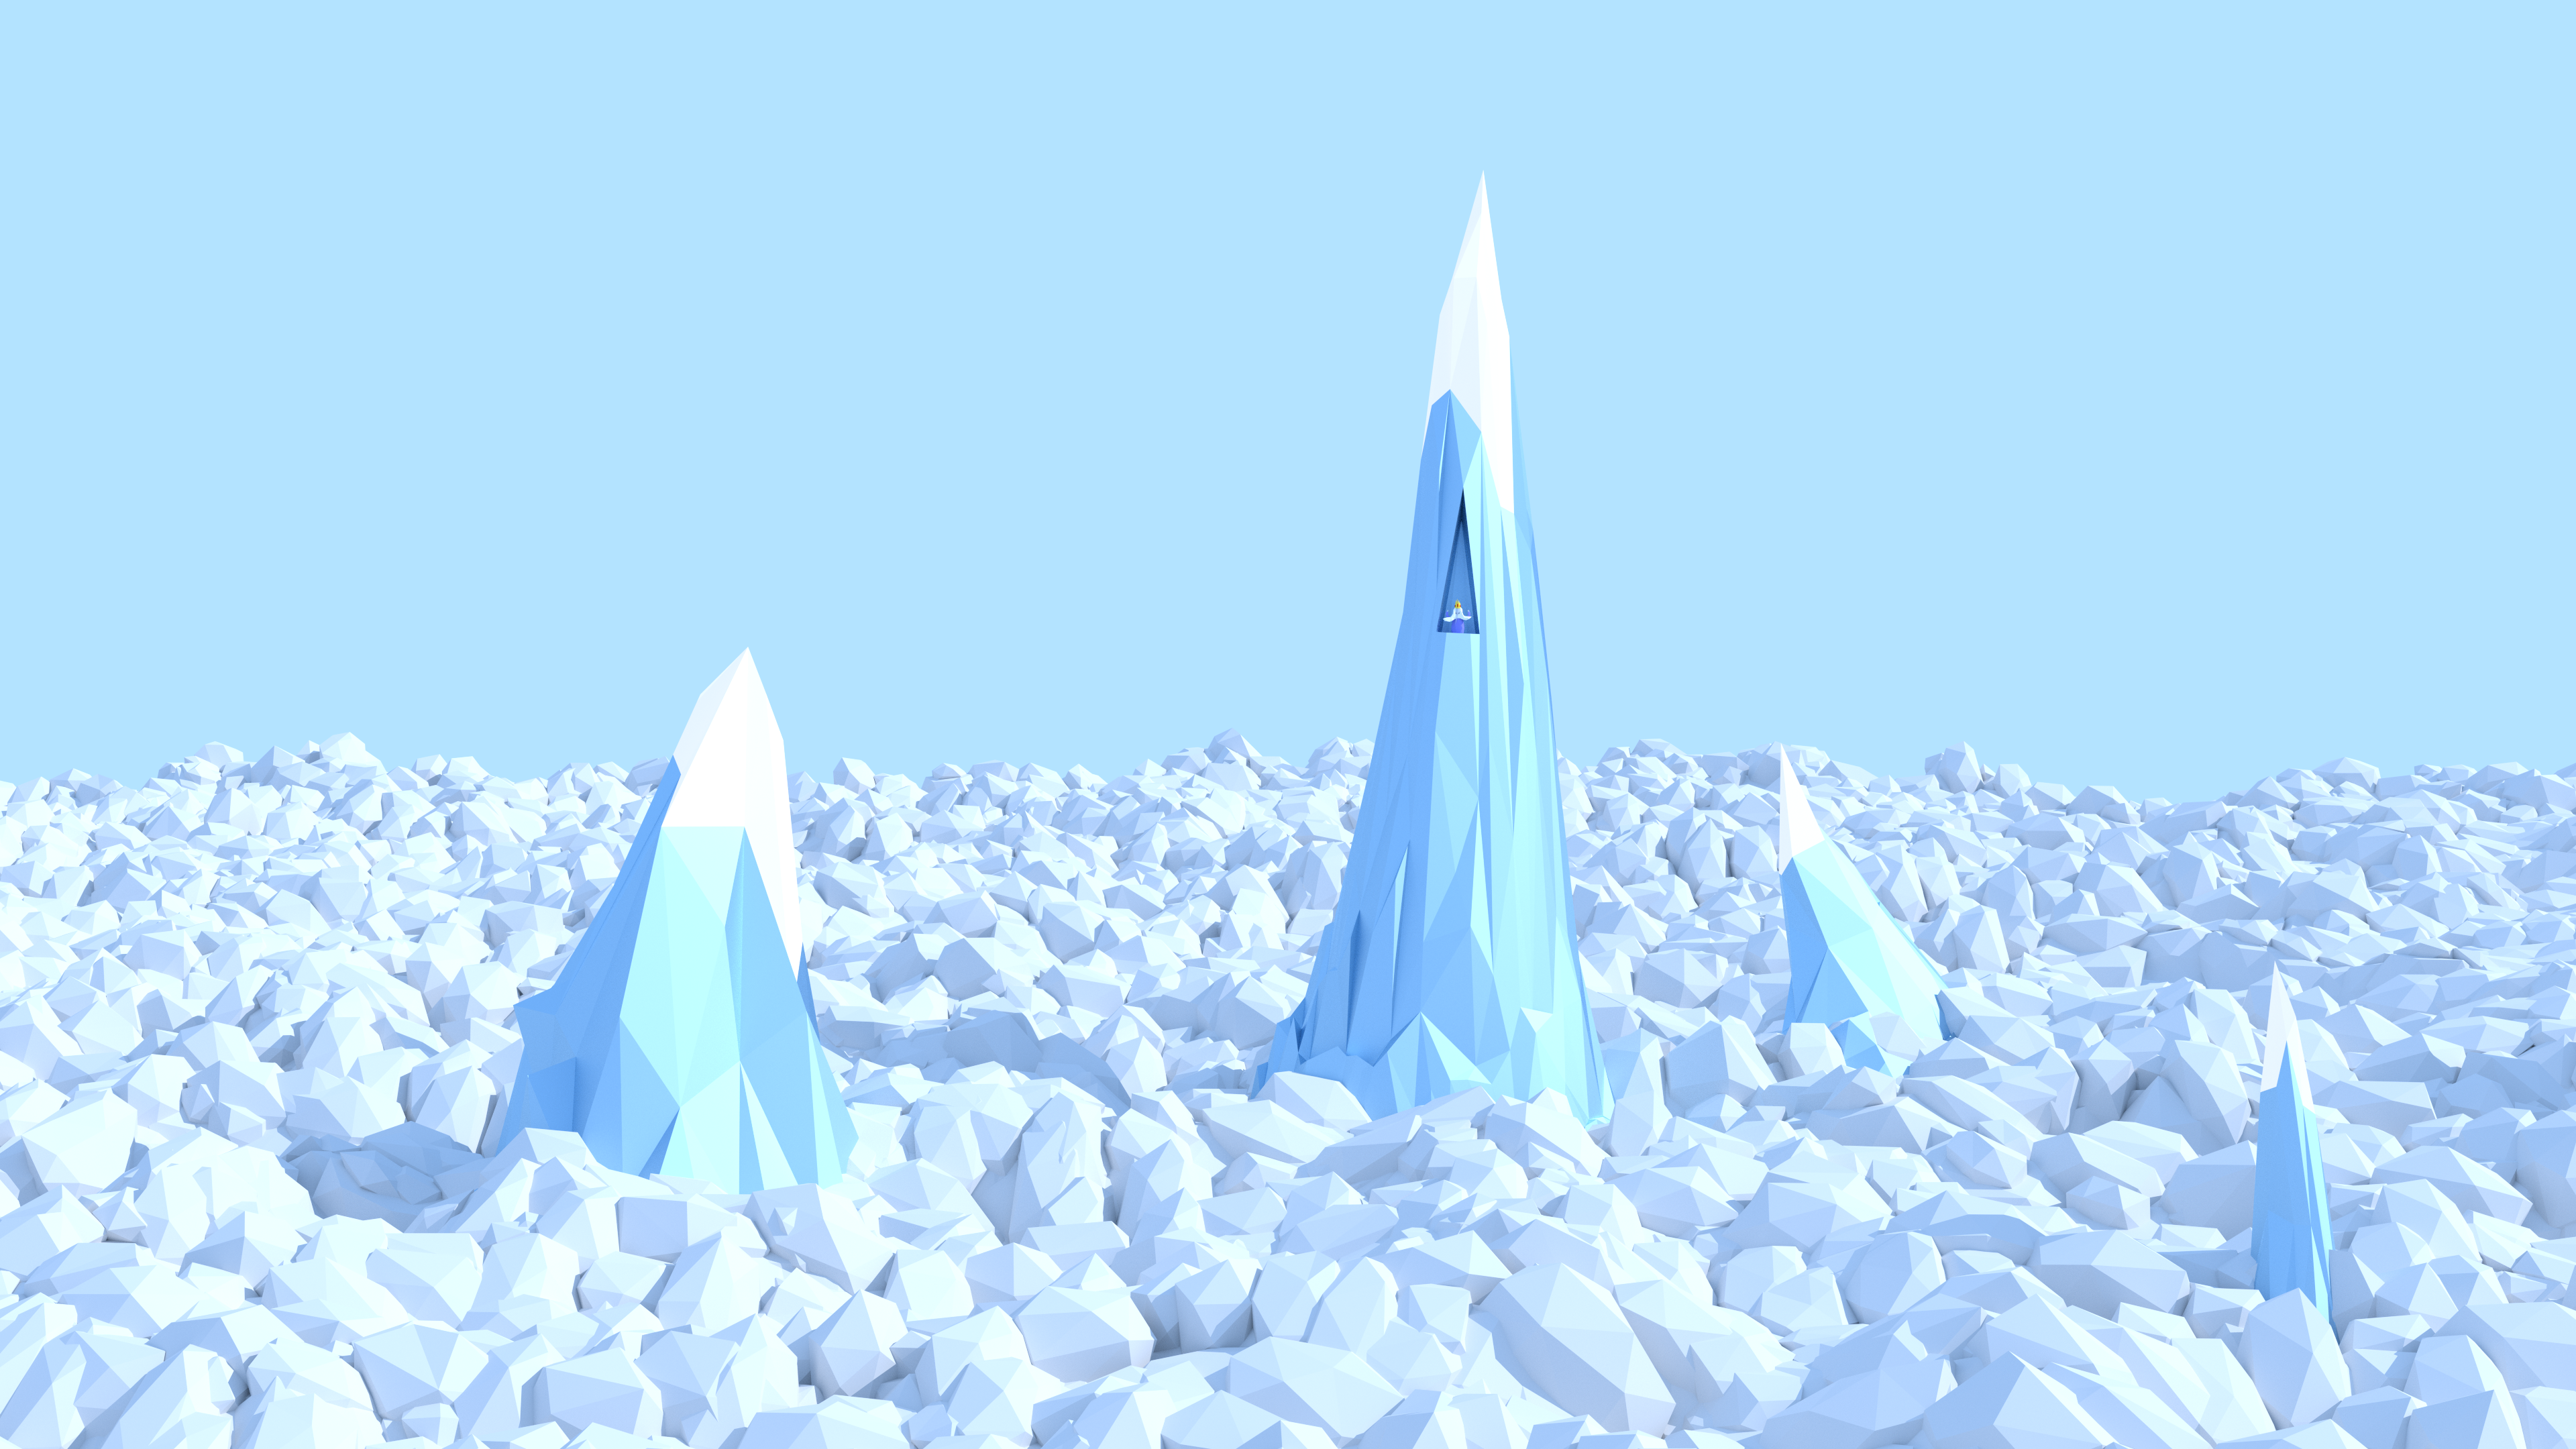 Low Poly Ice King by Vermacian55 3840x2160